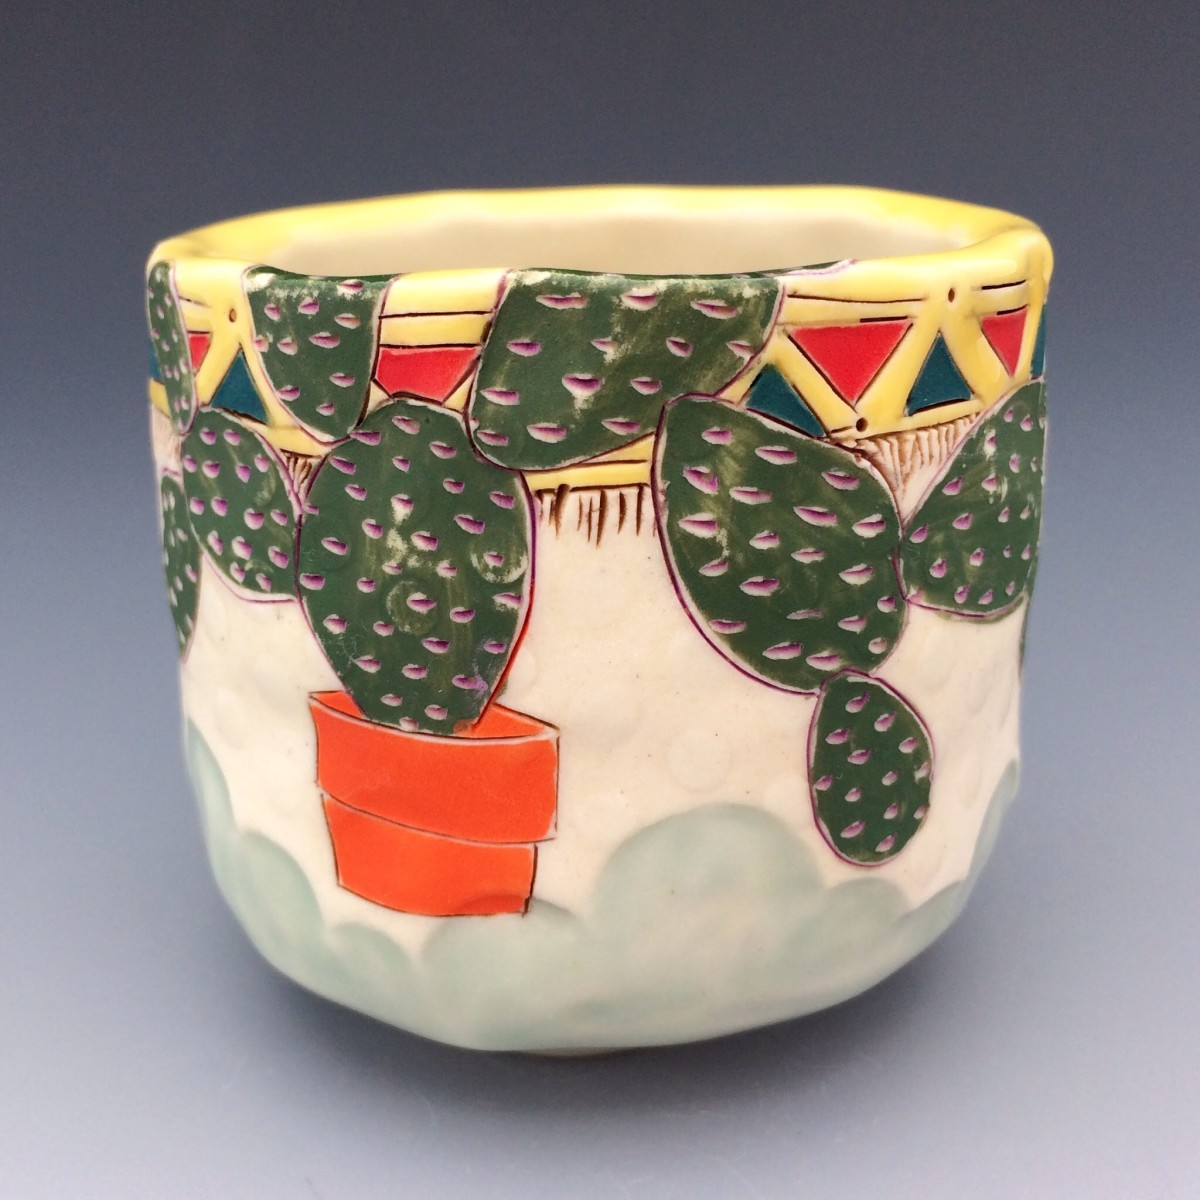 Potted Prickly Pear 3 by Sarah Magar